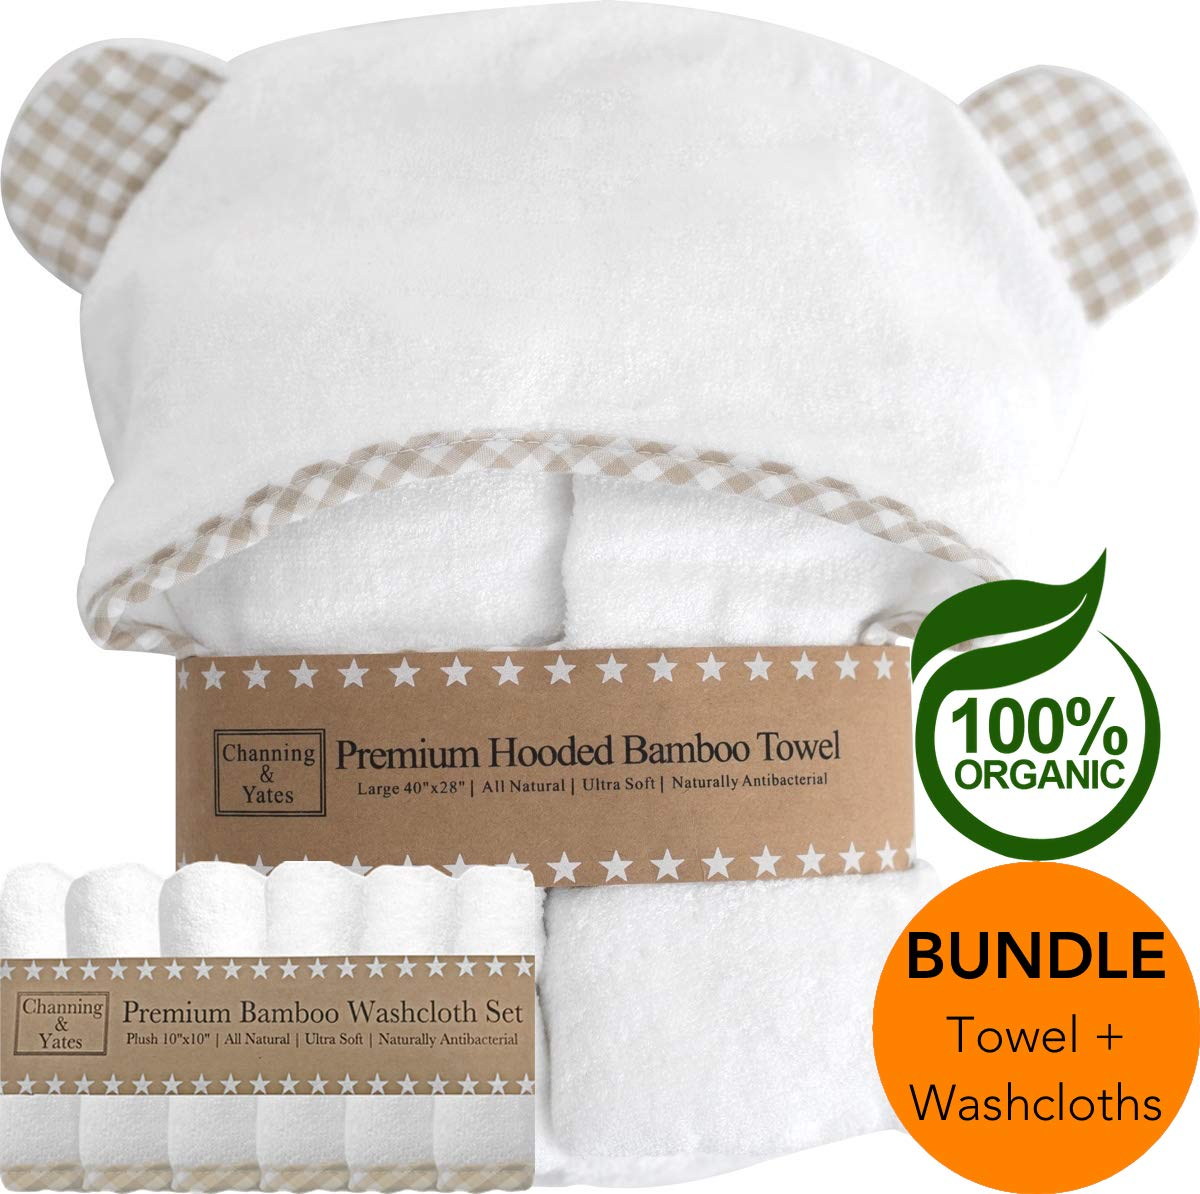 Premium Hooded Baby Towel + (6 Piece) Washcloth Gift Bundle - Organic Bamboo Baby Towels - Thick & Soft - Baby Towel and 6 Washcloth Baby Shower Gift Set - (Unisex Beige Gingham Bundle) by Channing & Yates